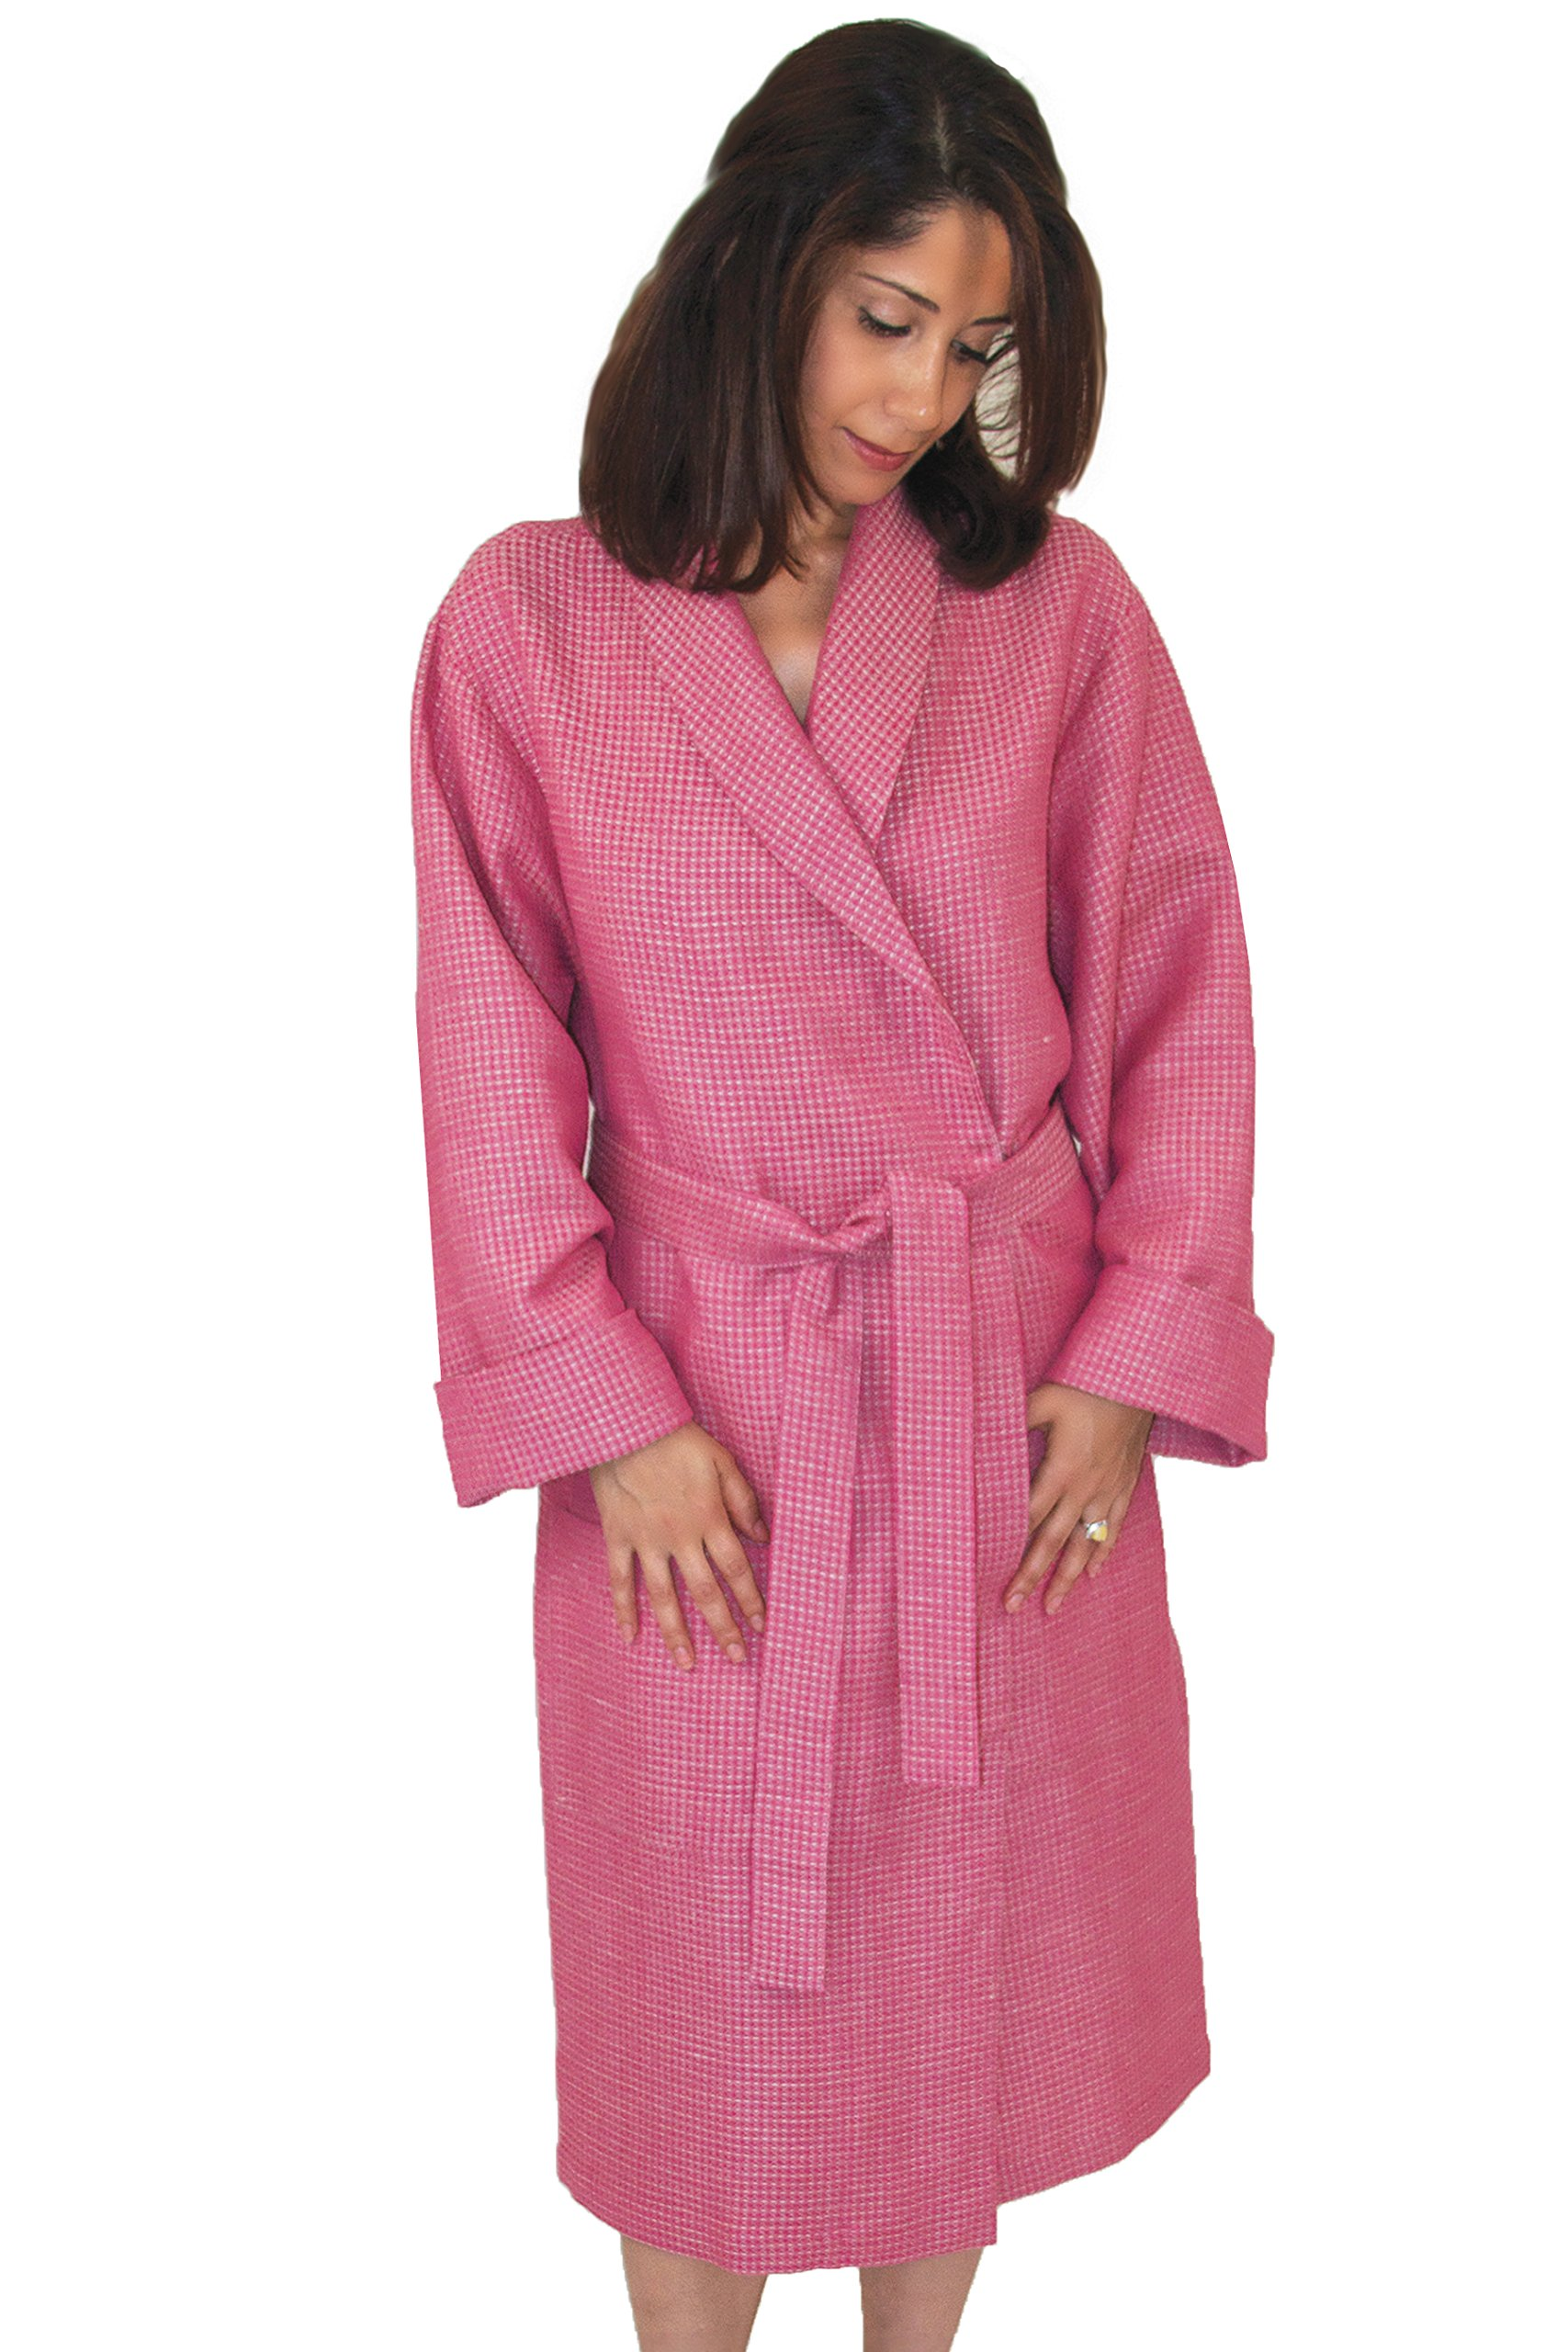 Bath Robe (Small) Linen-Cotton Waffle, Carmine Rose-Beige